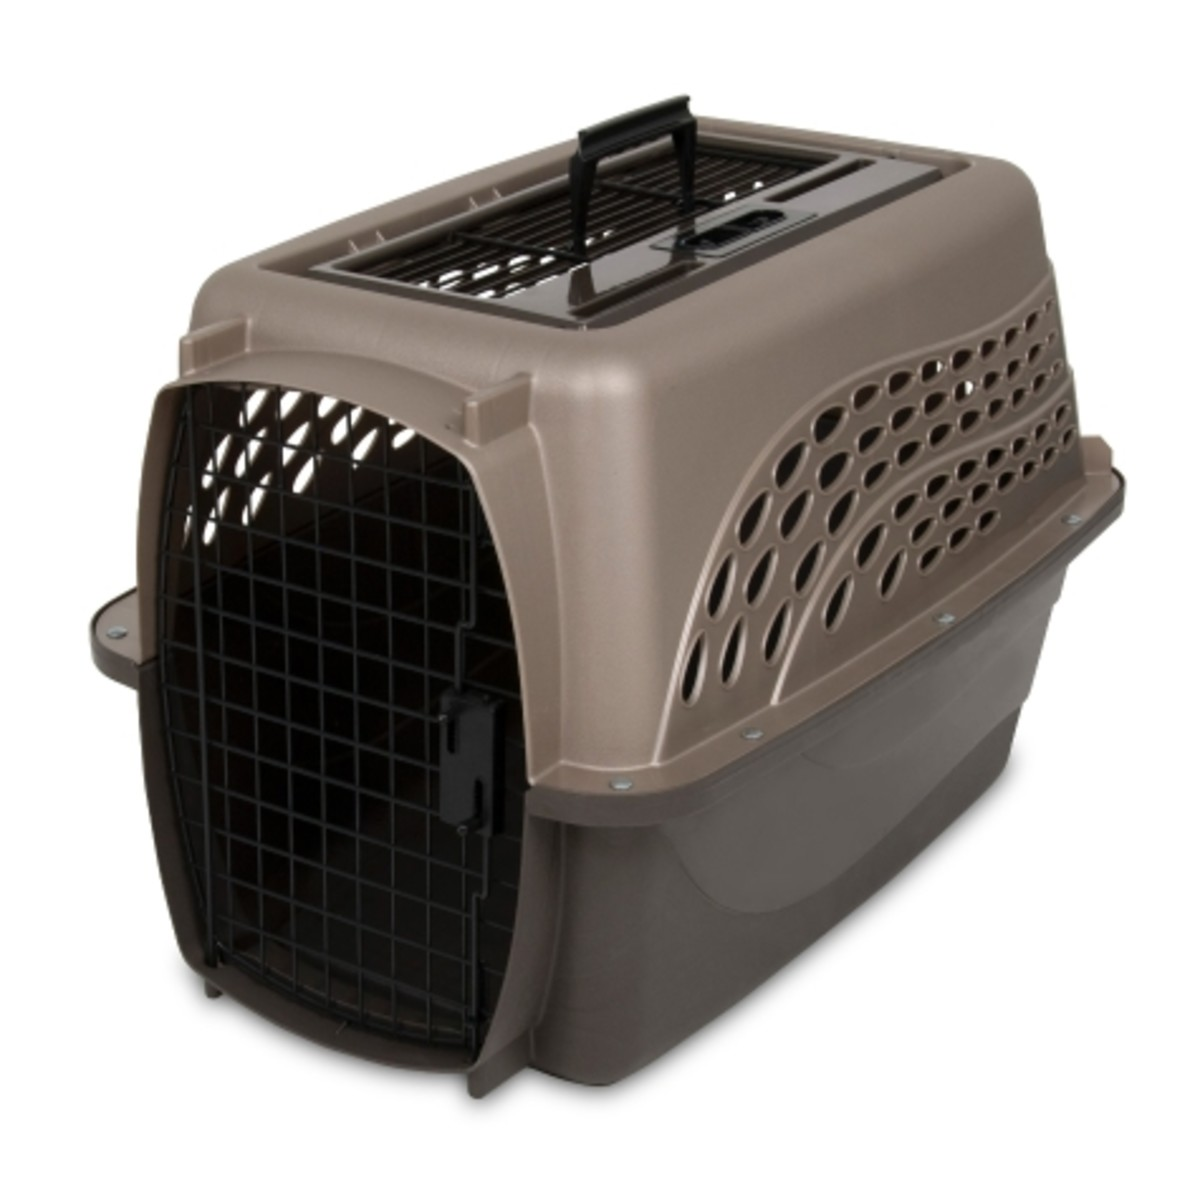 "Here's the Petmate Two-Door Top Load Kennel 24"" model. This hard-sided cat carrier is great as an everyday carrier for vet visits or for long road trips with your cat."